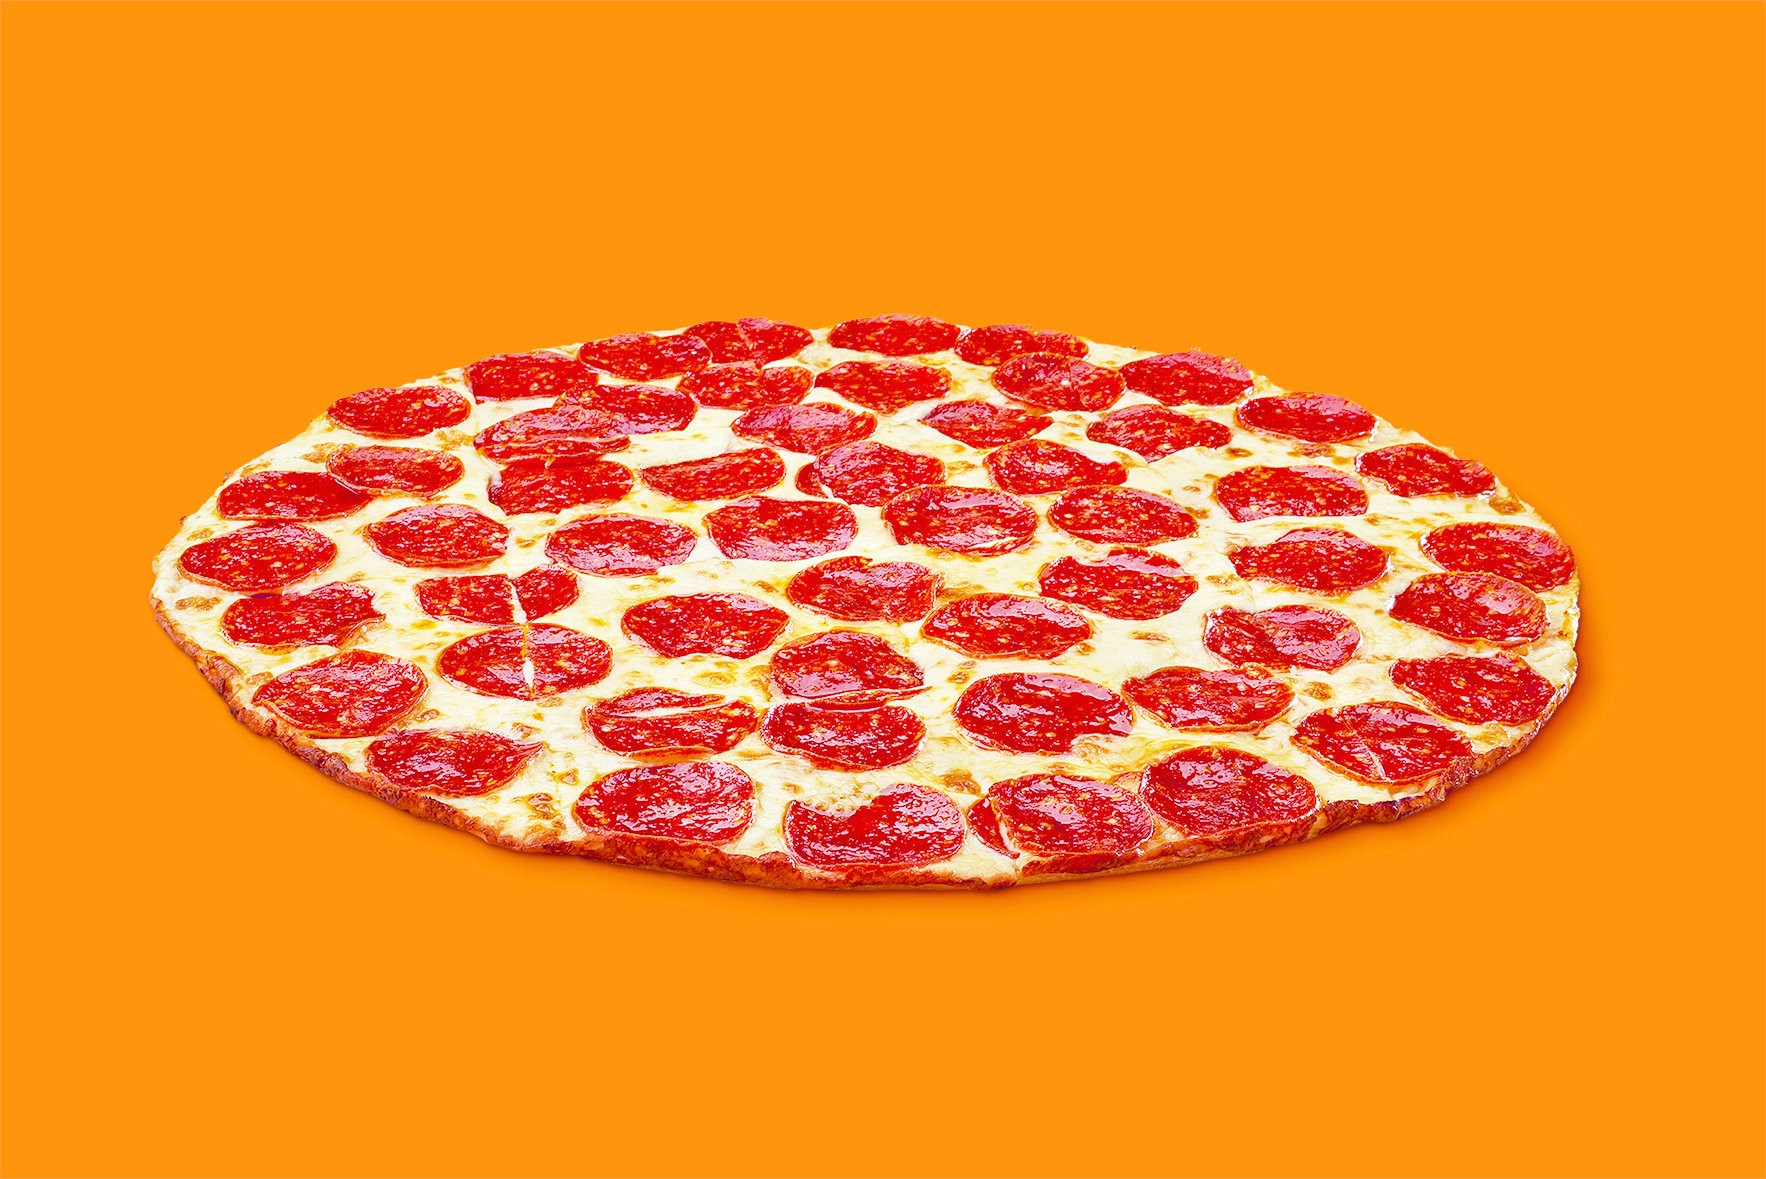 Little Caesars First Ever Thin Crust Pizza To Cost A Bit More Than Its Hot N Ready Mlive Com